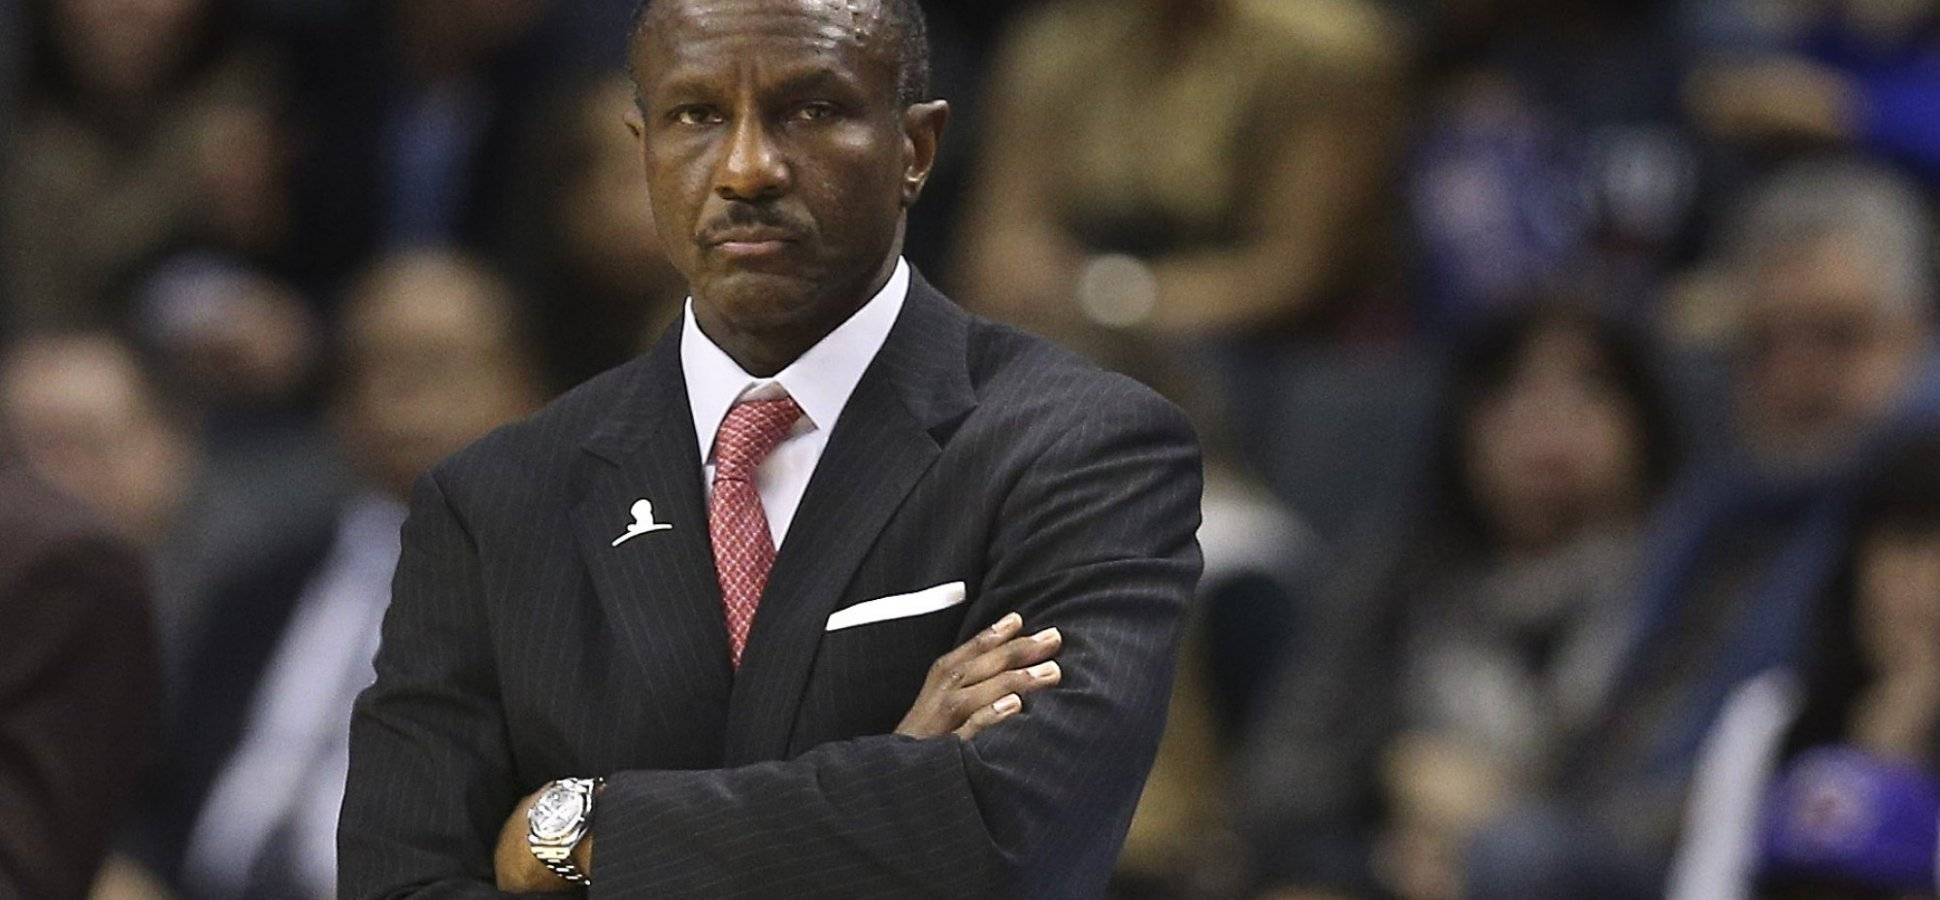 Dwane Casey, NBA Coach of the Year, Was Fired. His Response Is a Genius Lesson in Emotional Intelligence